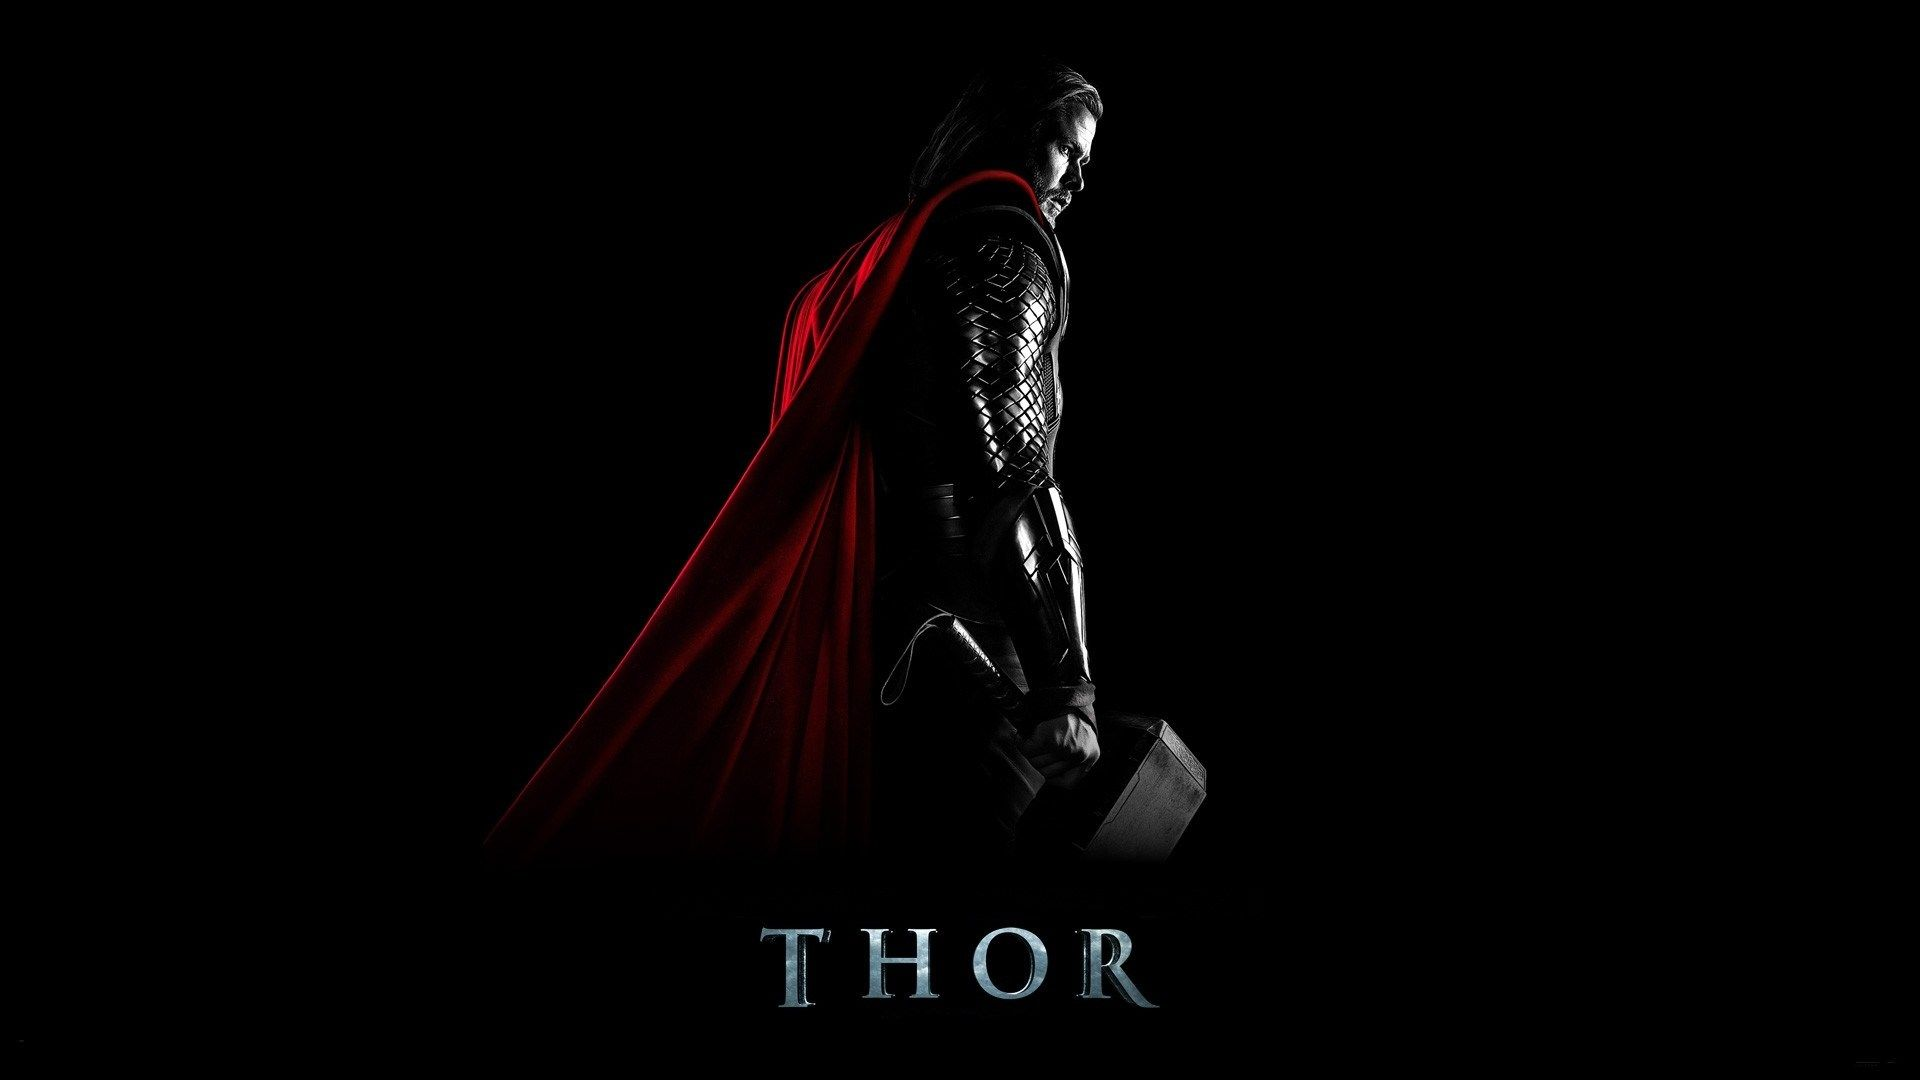 High Quality Thor Wallpaper Jaylee Leapman 1920x1080 Thor Wallpaper Thor Posters Thor